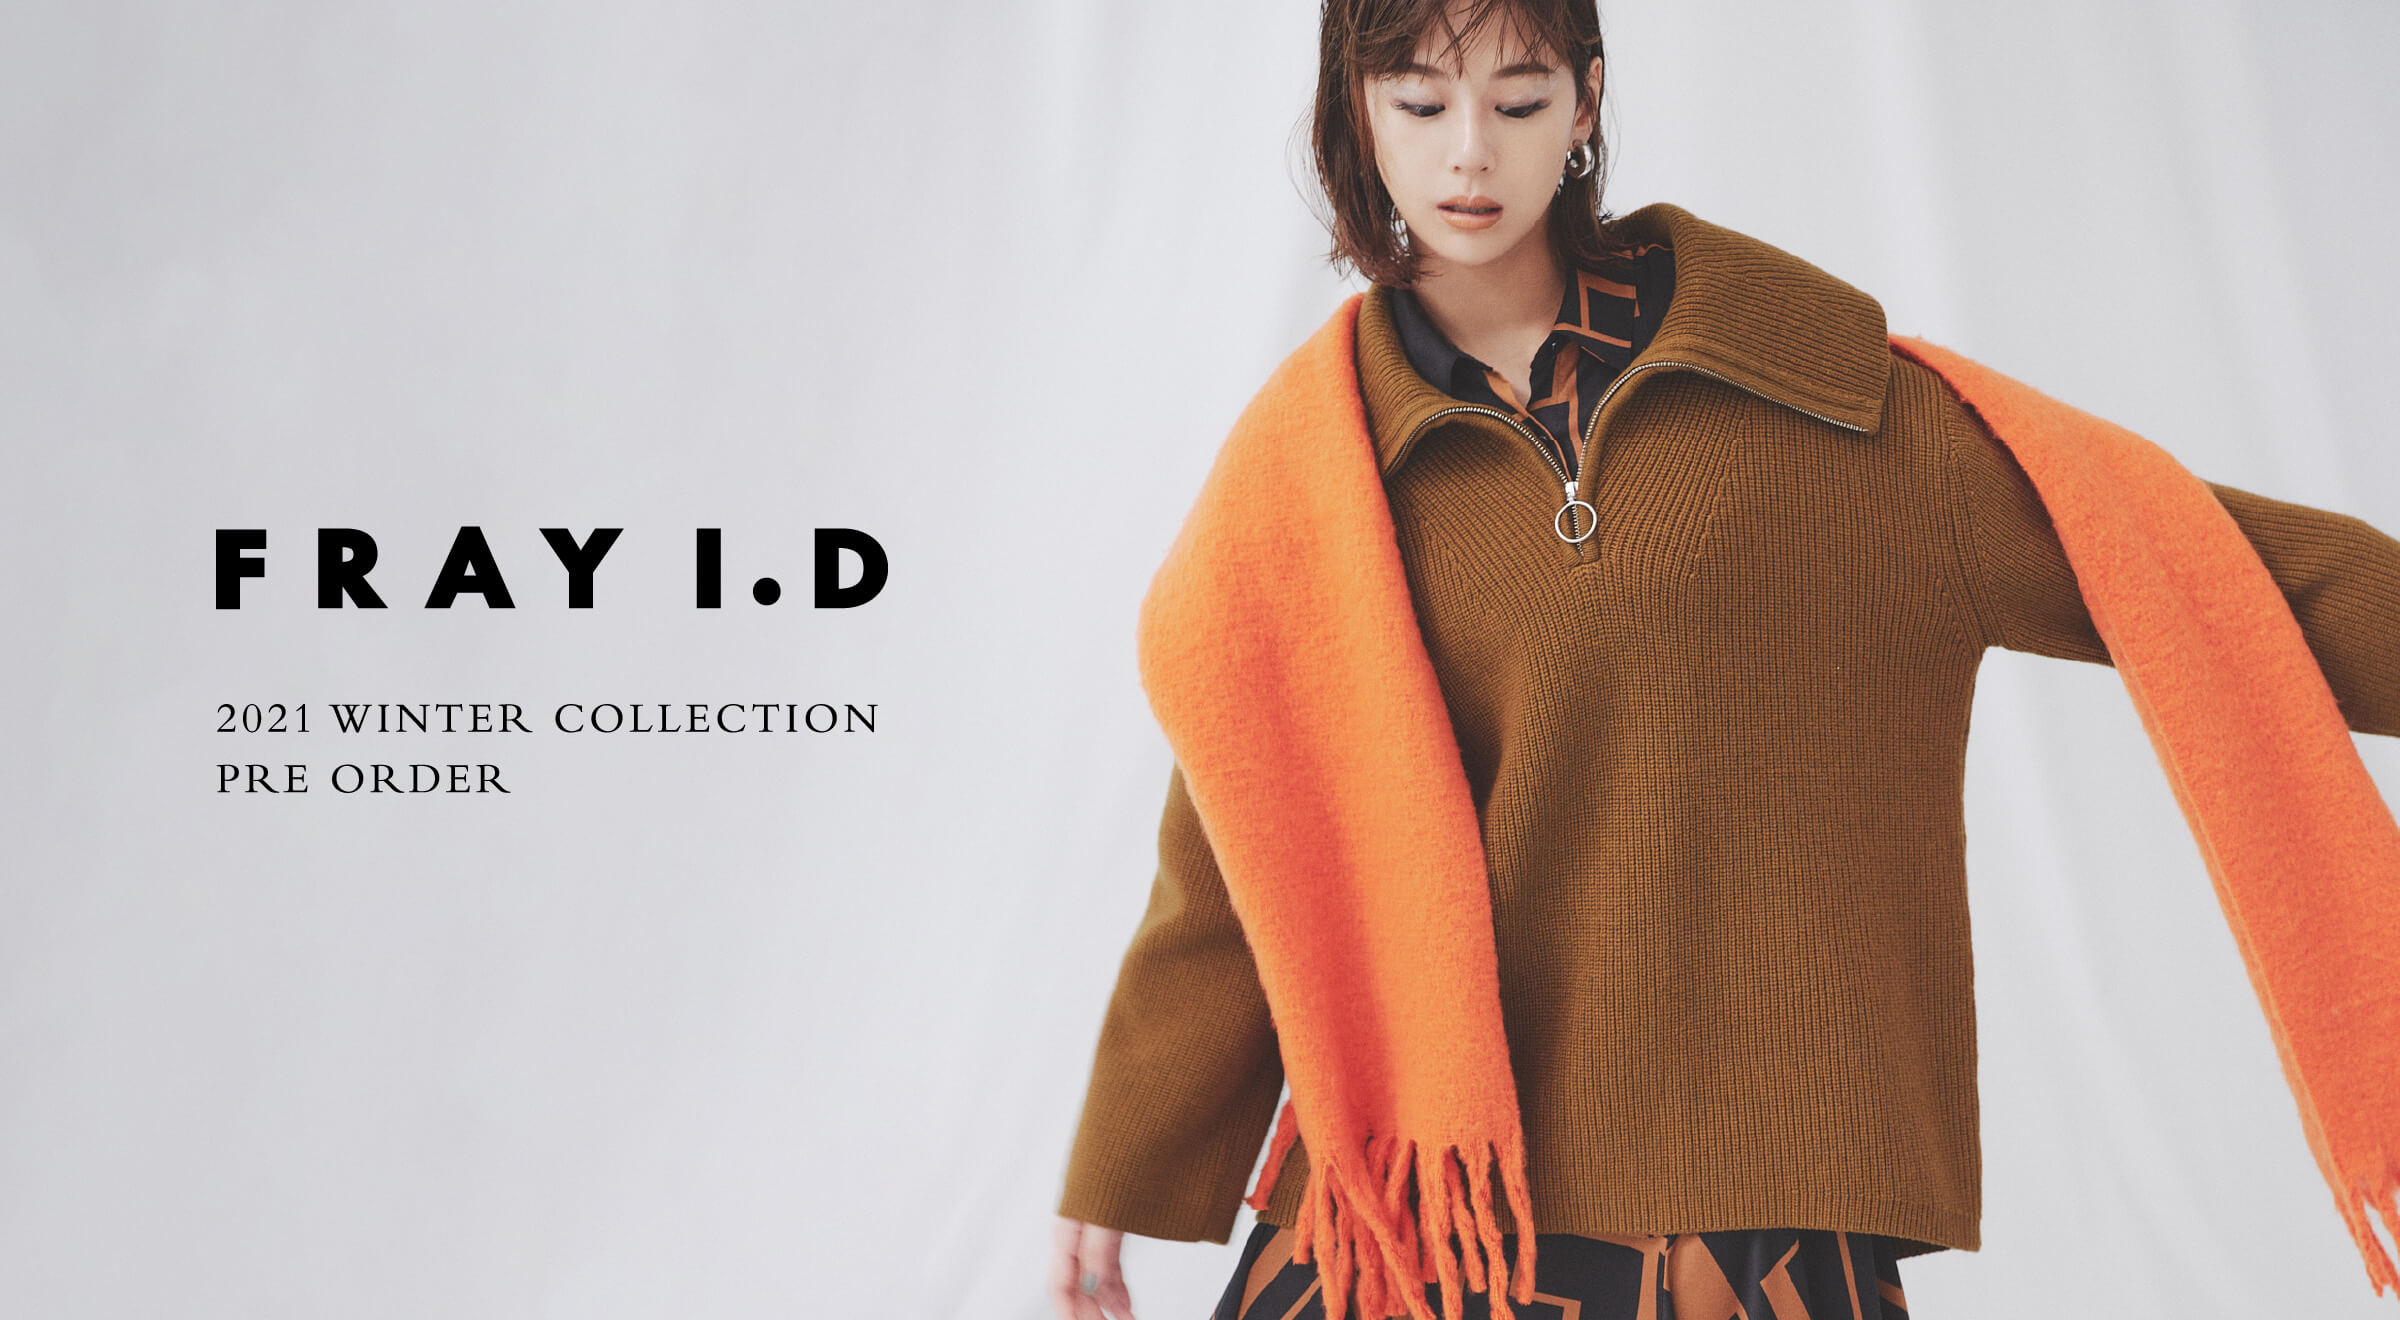 2021 WINTER COLLECTION PRE ORDER